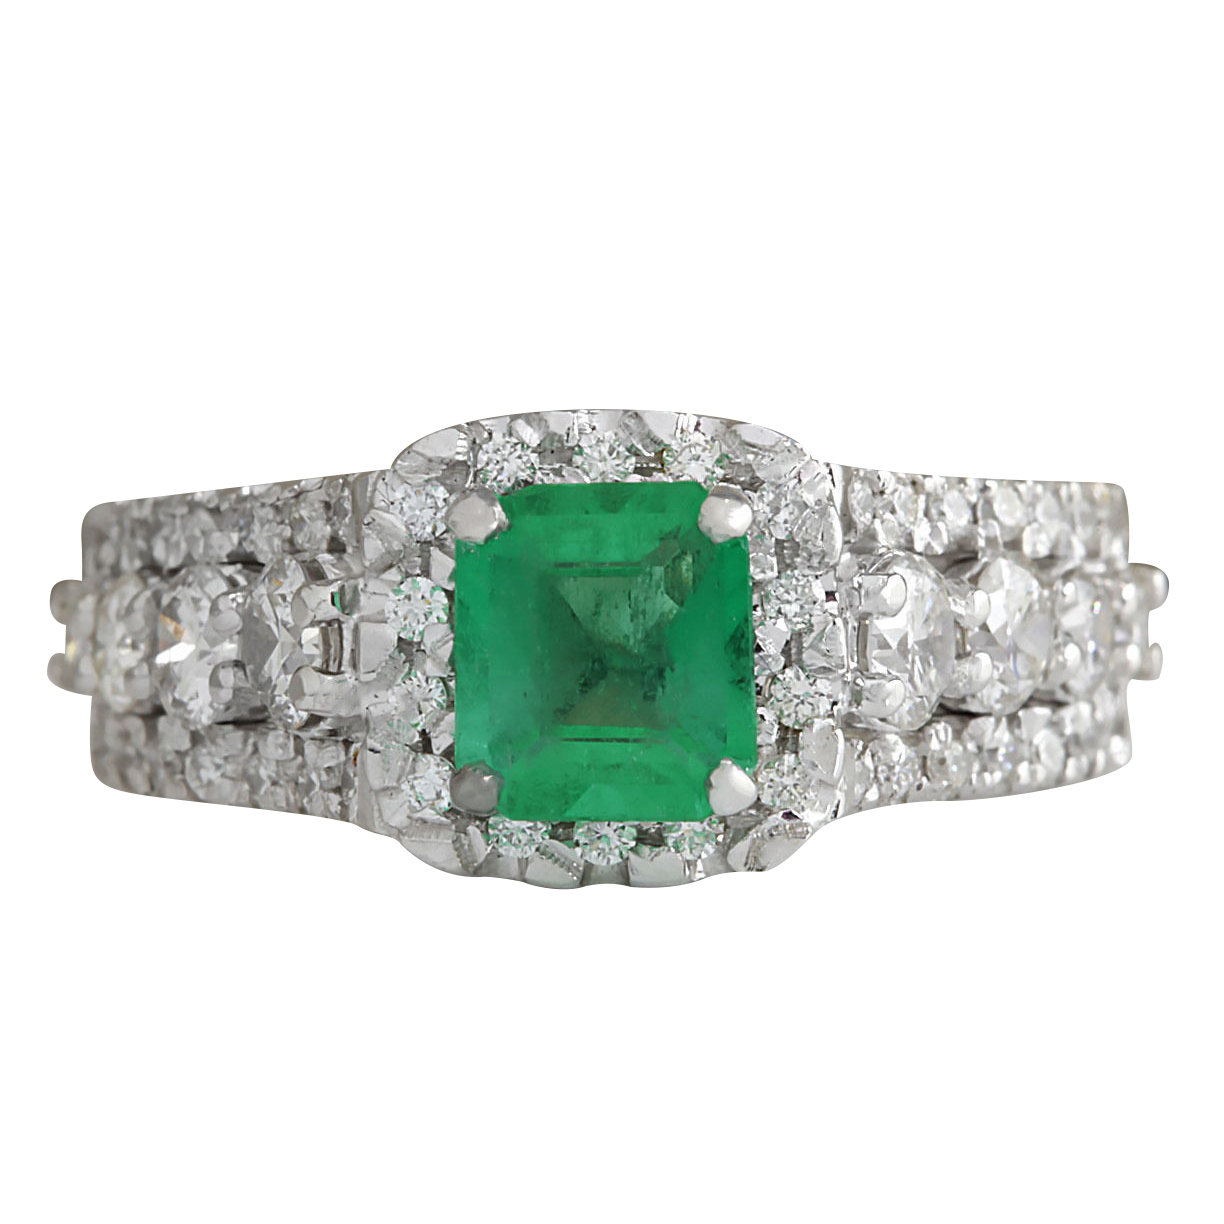 """""14K White G old Emerald Diamond Gold Ring Size 6.5"""""" 1555589"